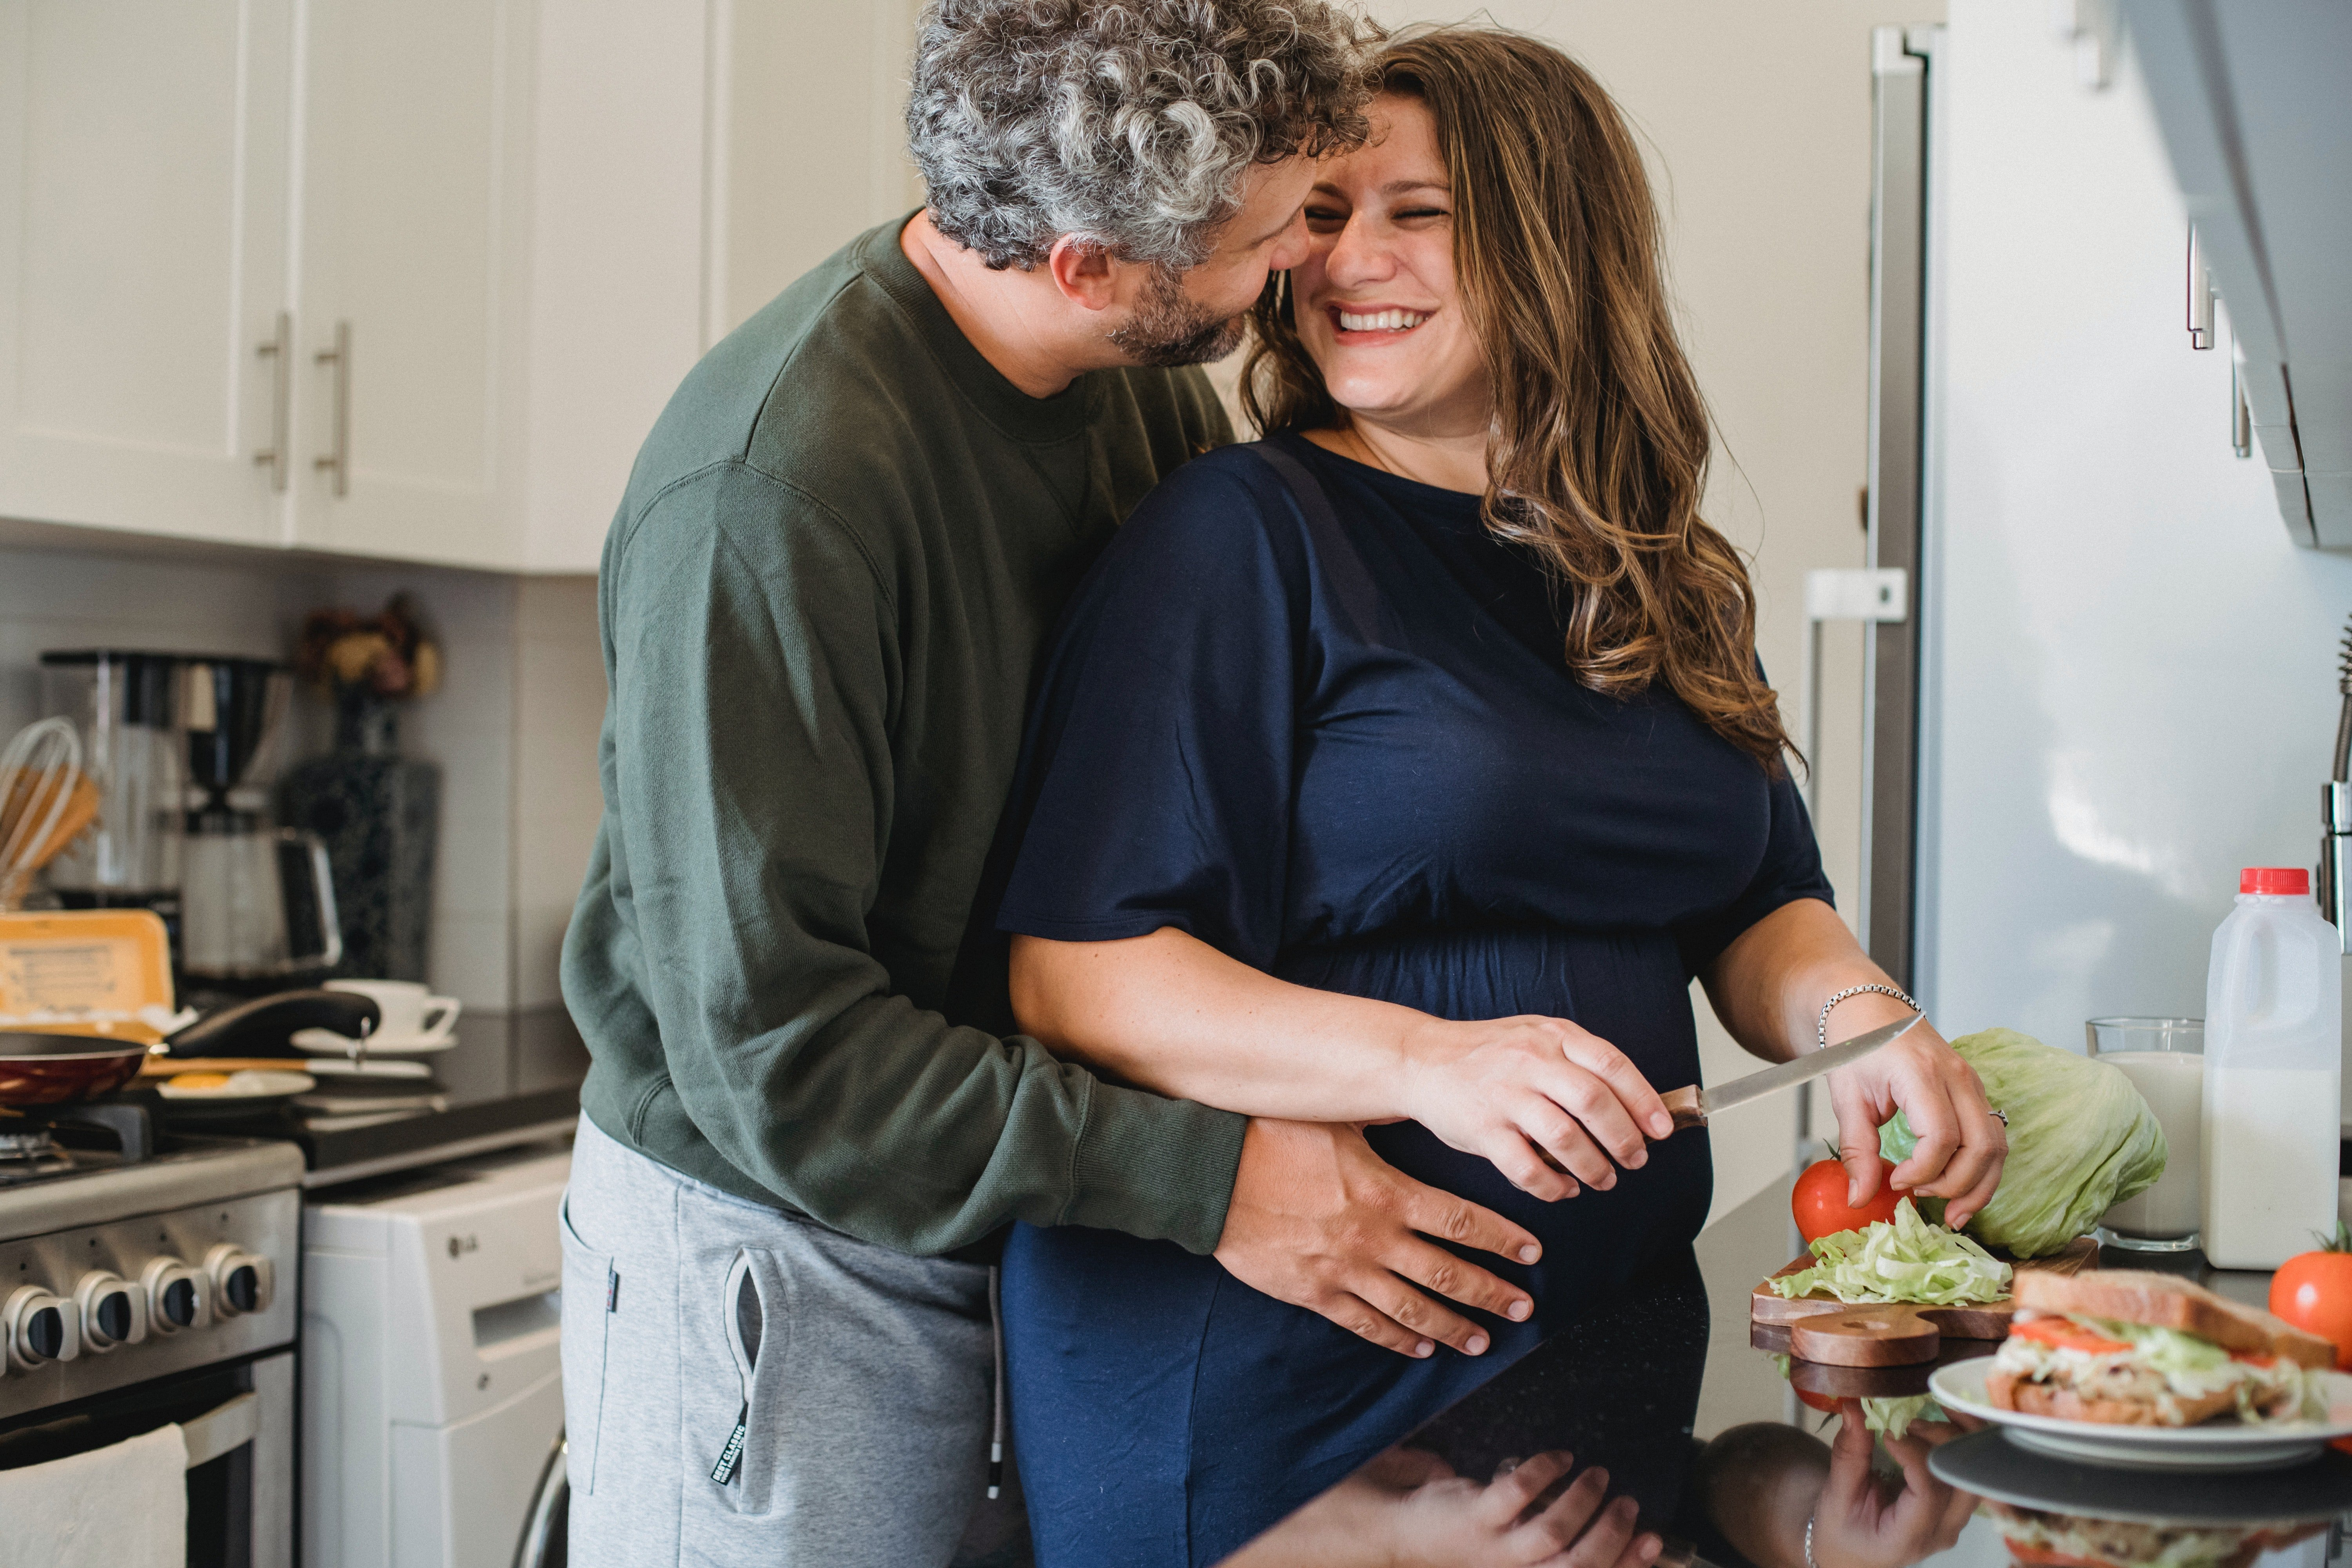 A husband lovingly embracing his pregnant wife while she's cooking.   Photo: Pexels/Amina Philkins